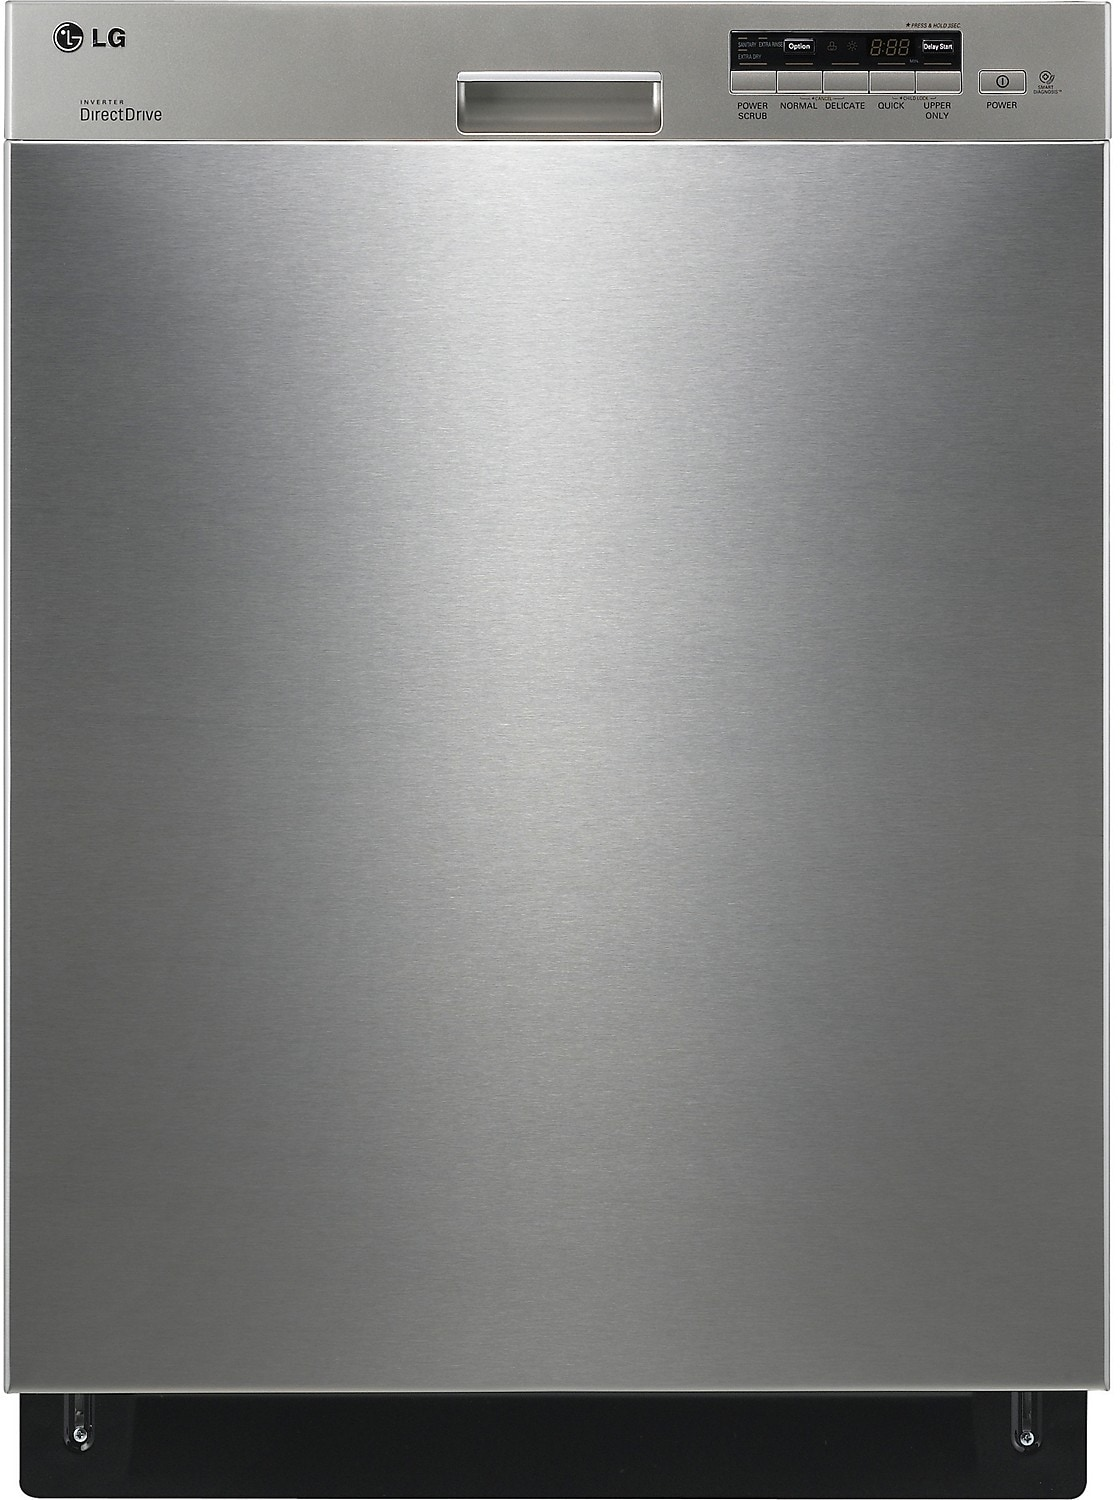 "Clean-Up - LG 24"" Semi-Integrated Dishwasher with Flexible EasyRack™ System - Stainless Steel"